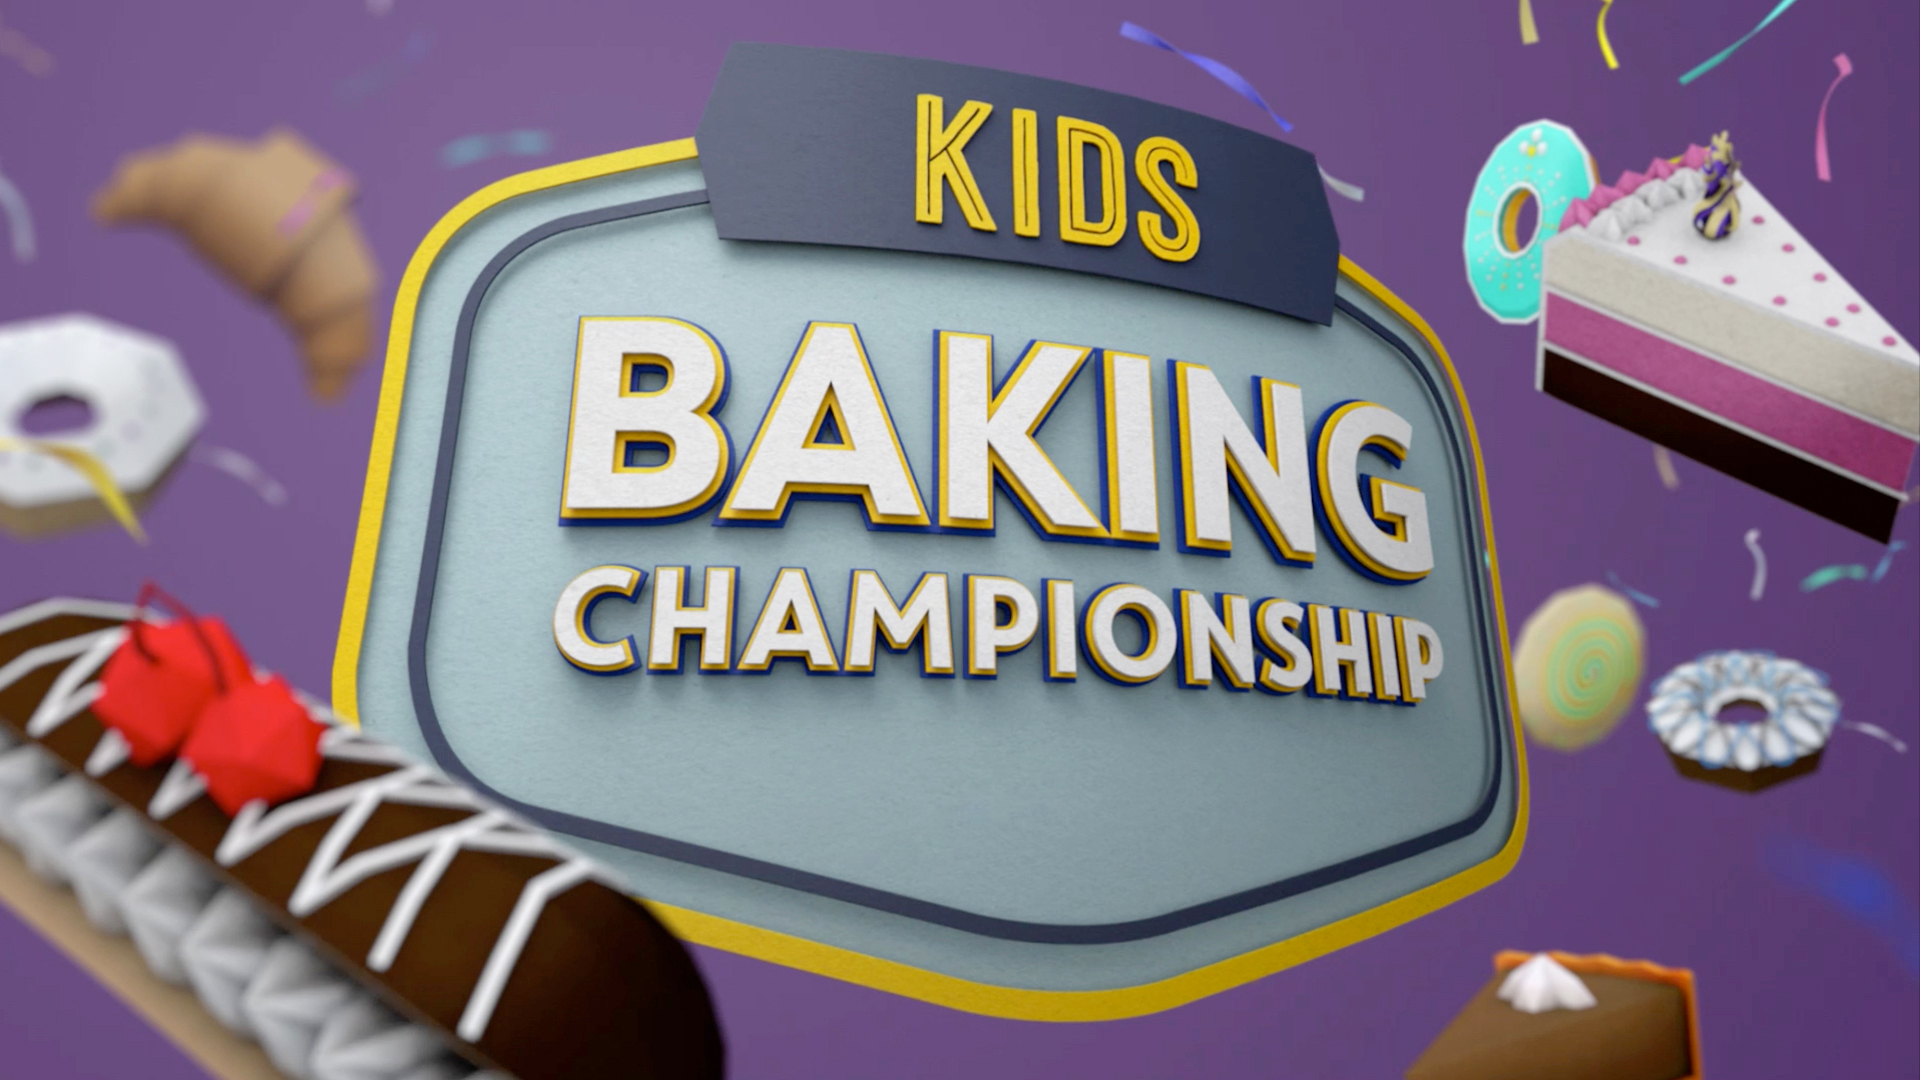 Kids Baking Championship | Game Shows Wiki | FANDOM powered by Wikia